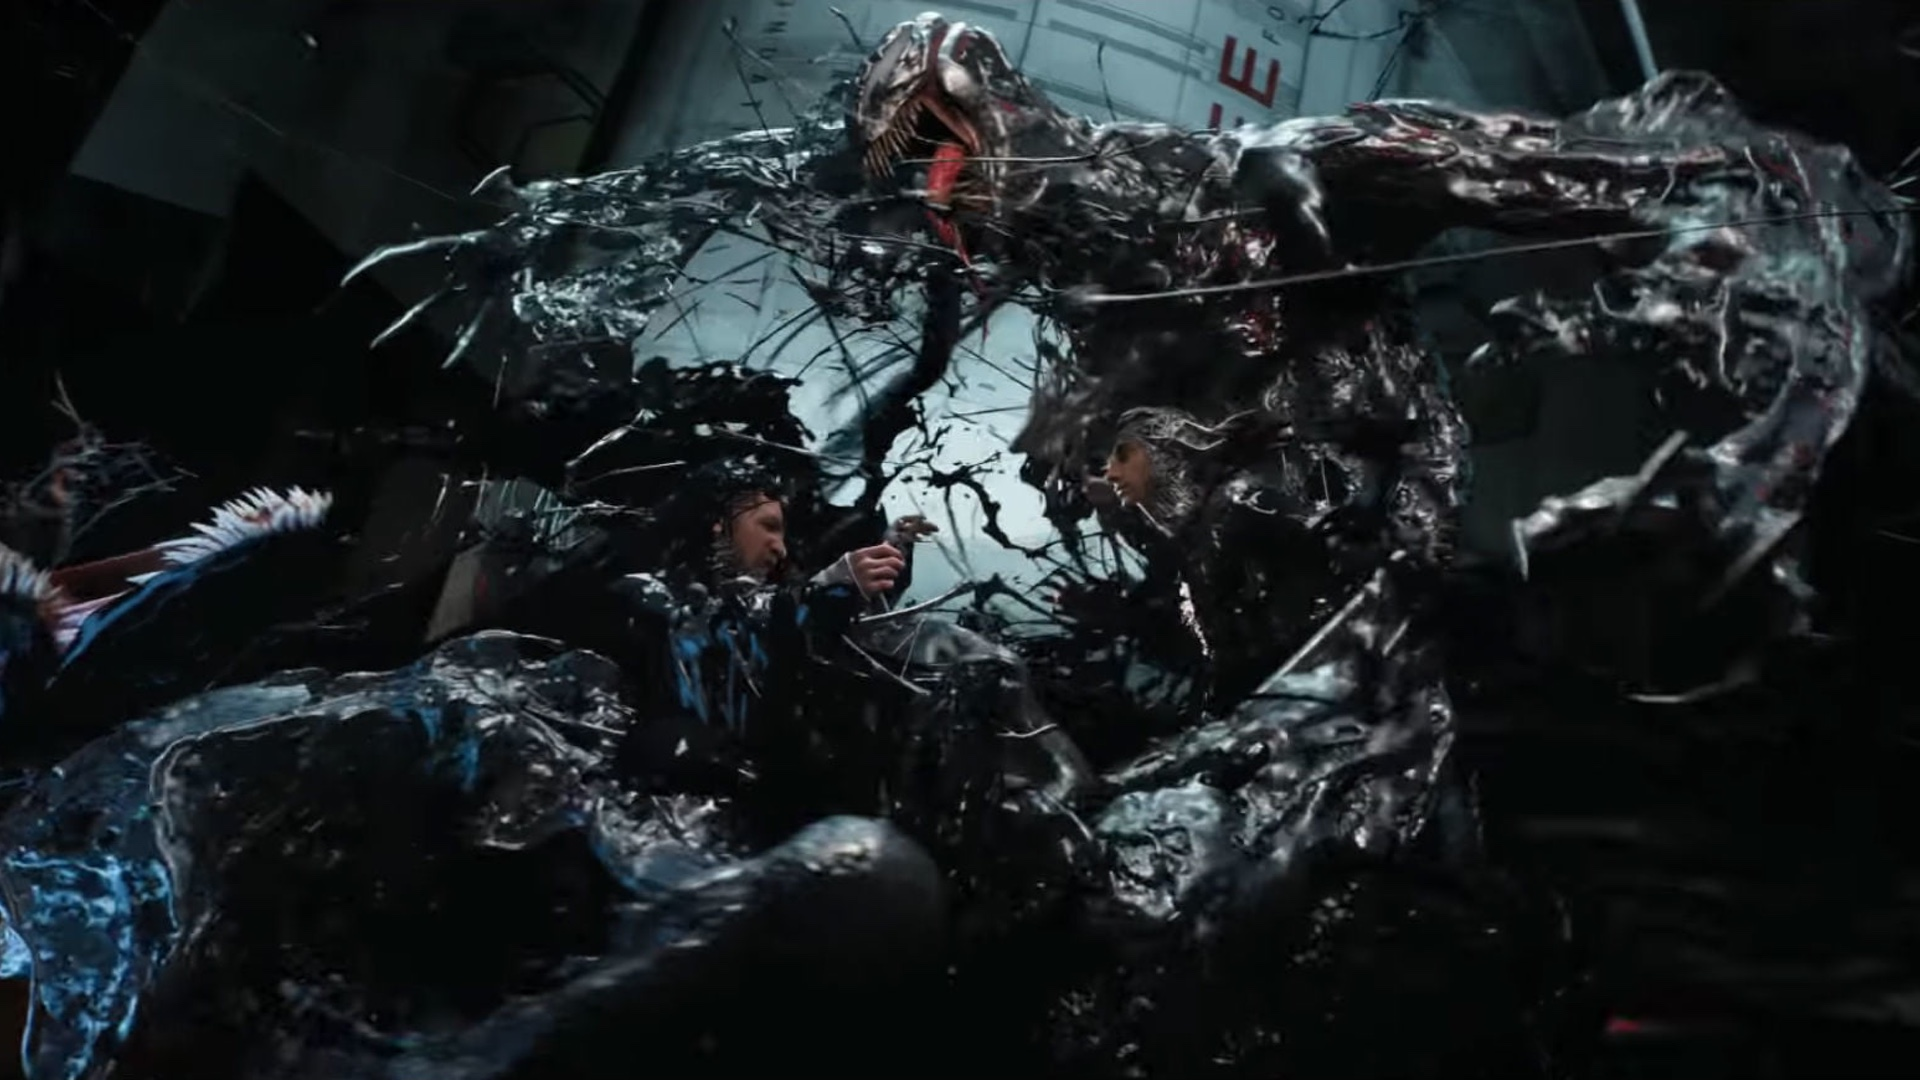 Cool Concept Art From Venom Shows An Unused Scene And A Fight Sequence Geektyrant